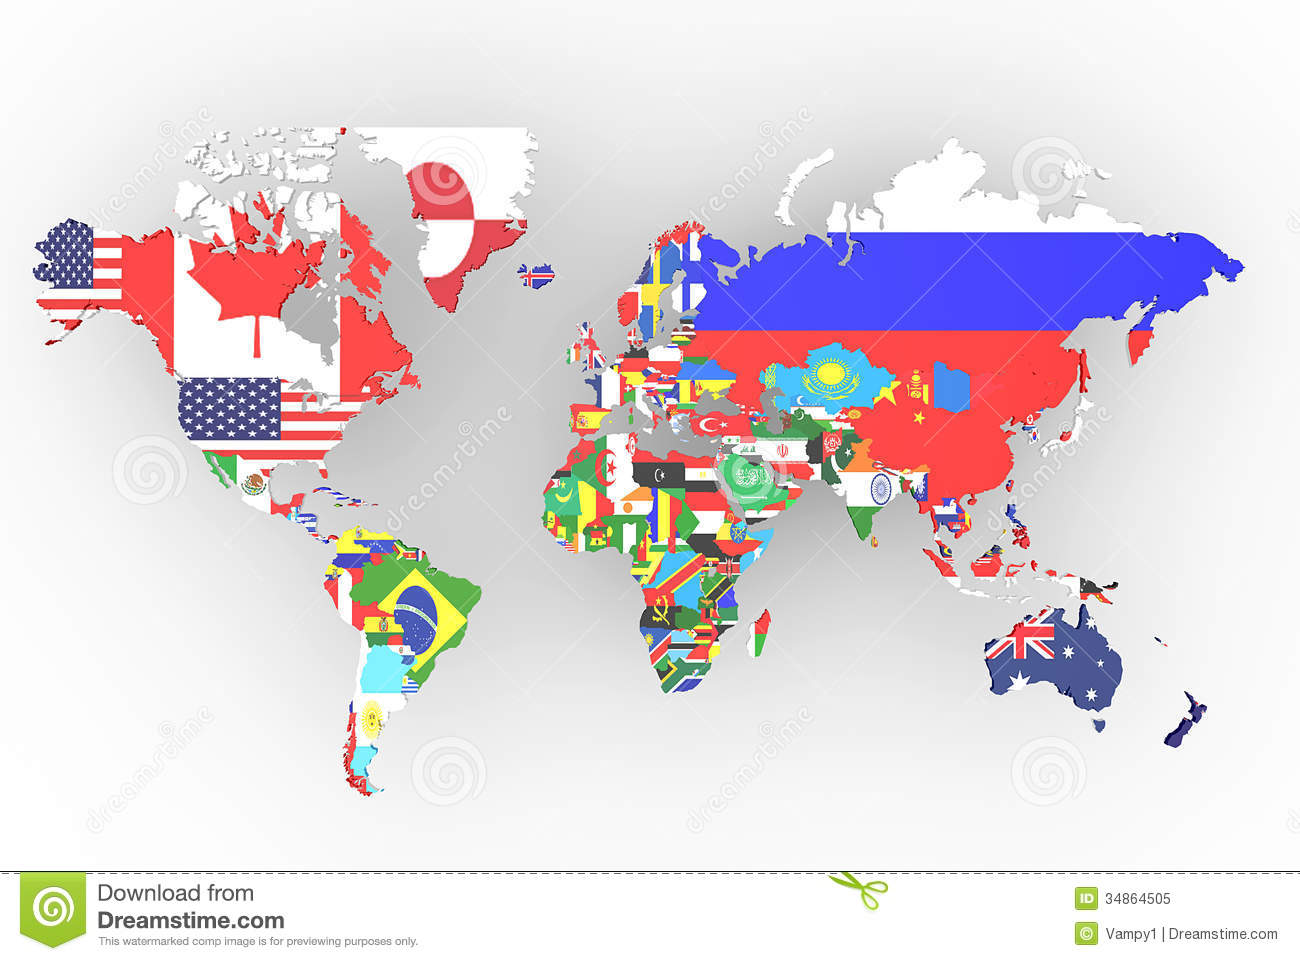 Political map of world stock illustration. Illustration of business ...